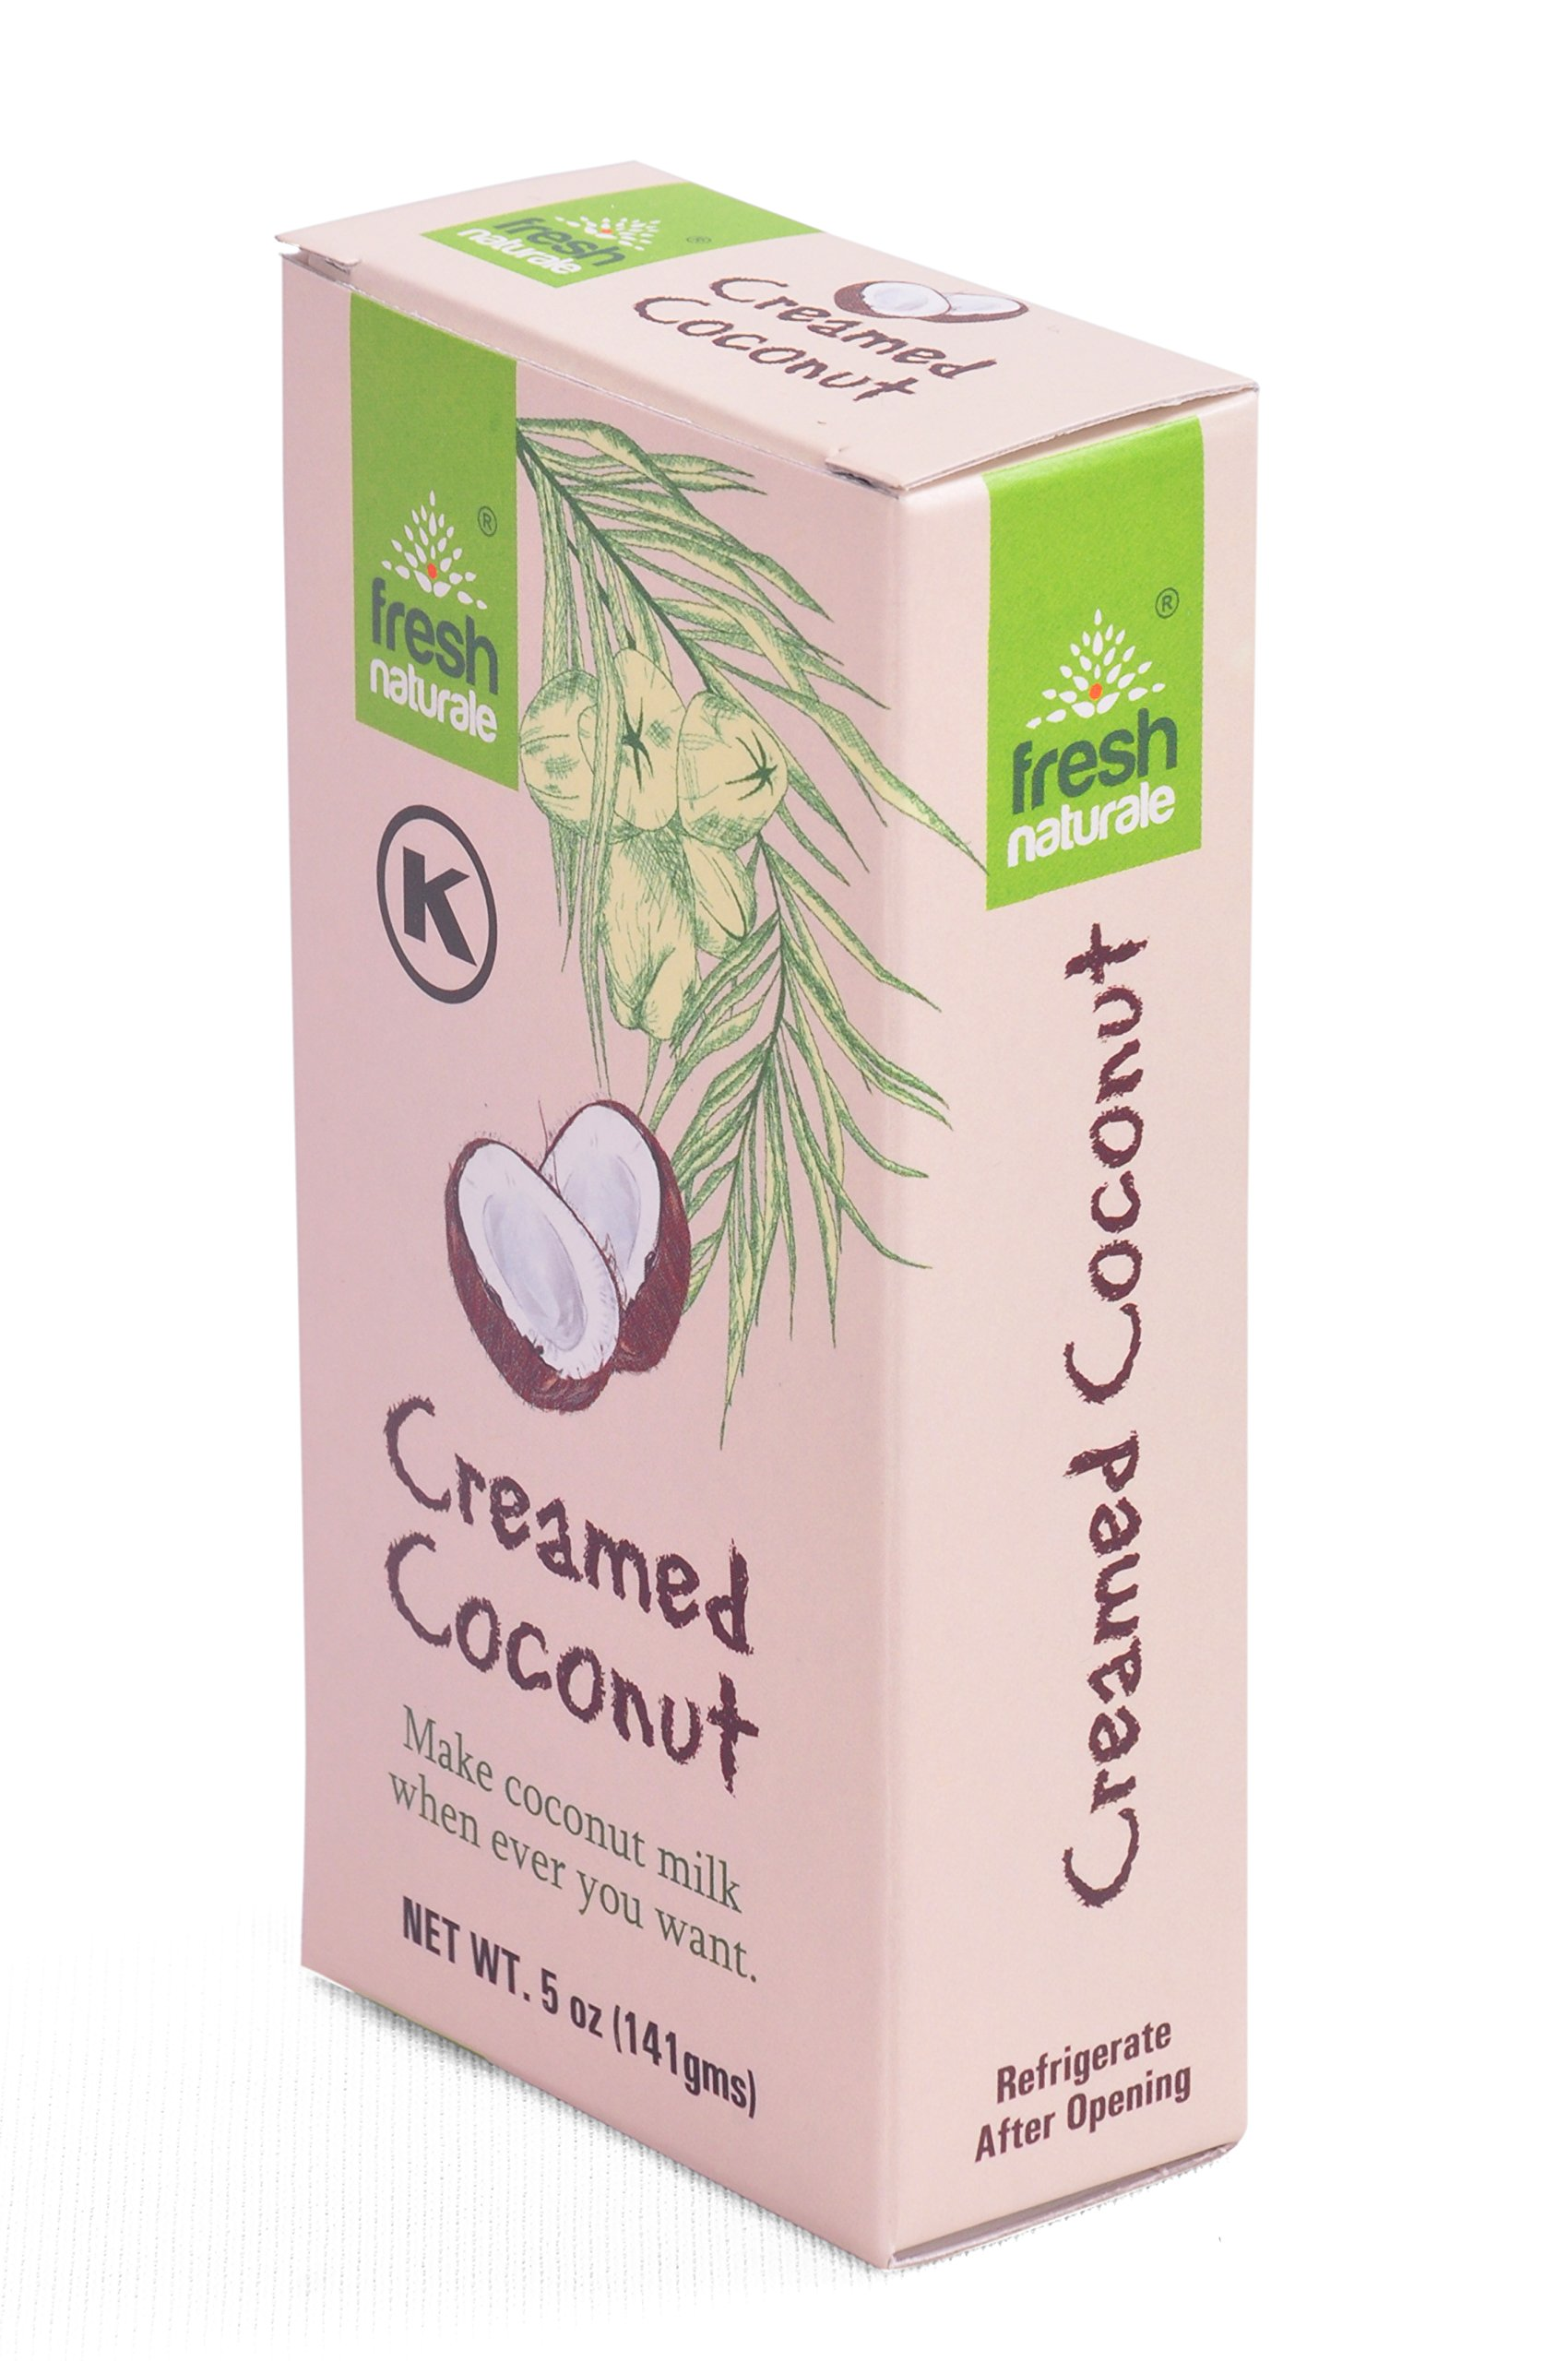 Creamed Coconut 141 gms ( 5 oz ) from Fresh Naturale . Kosher Certified . (pack of 1)